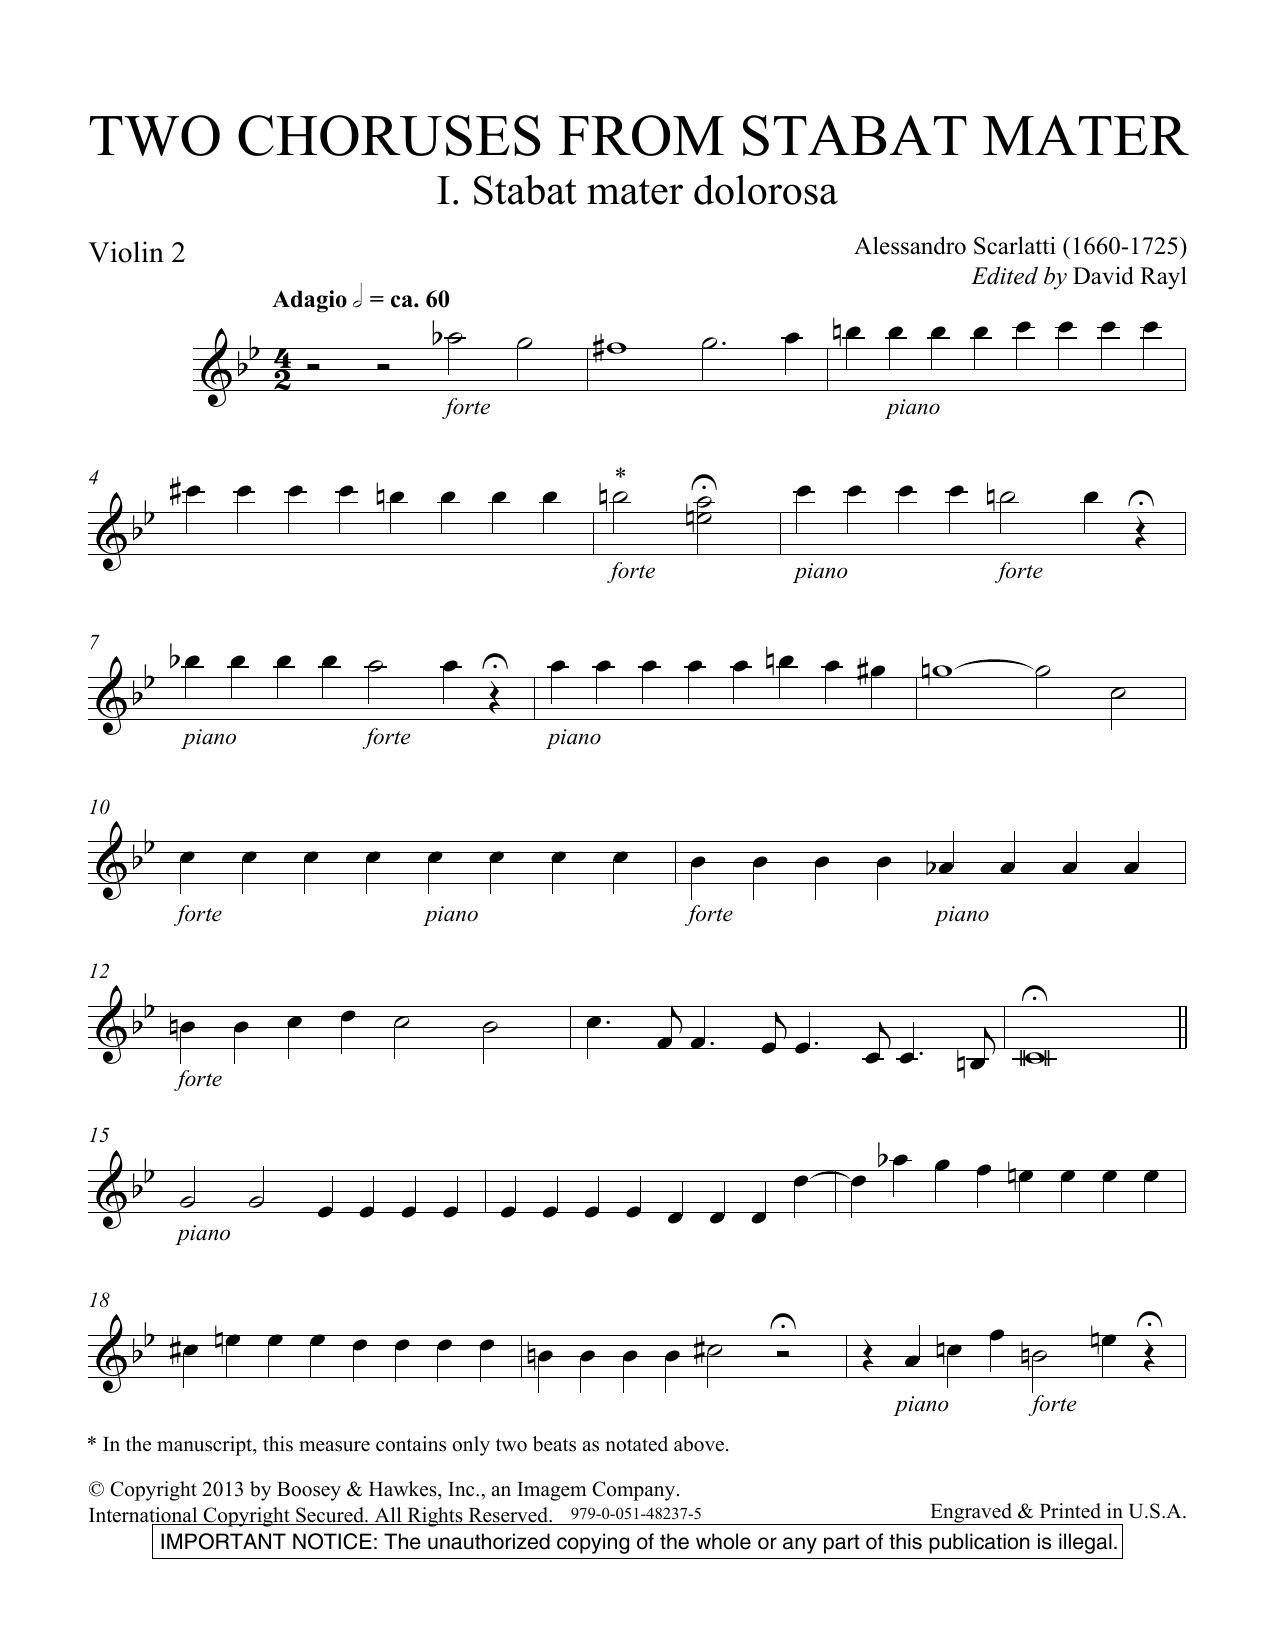 Two Choruses from Stabat Mater - Violin 2 Sheet Music